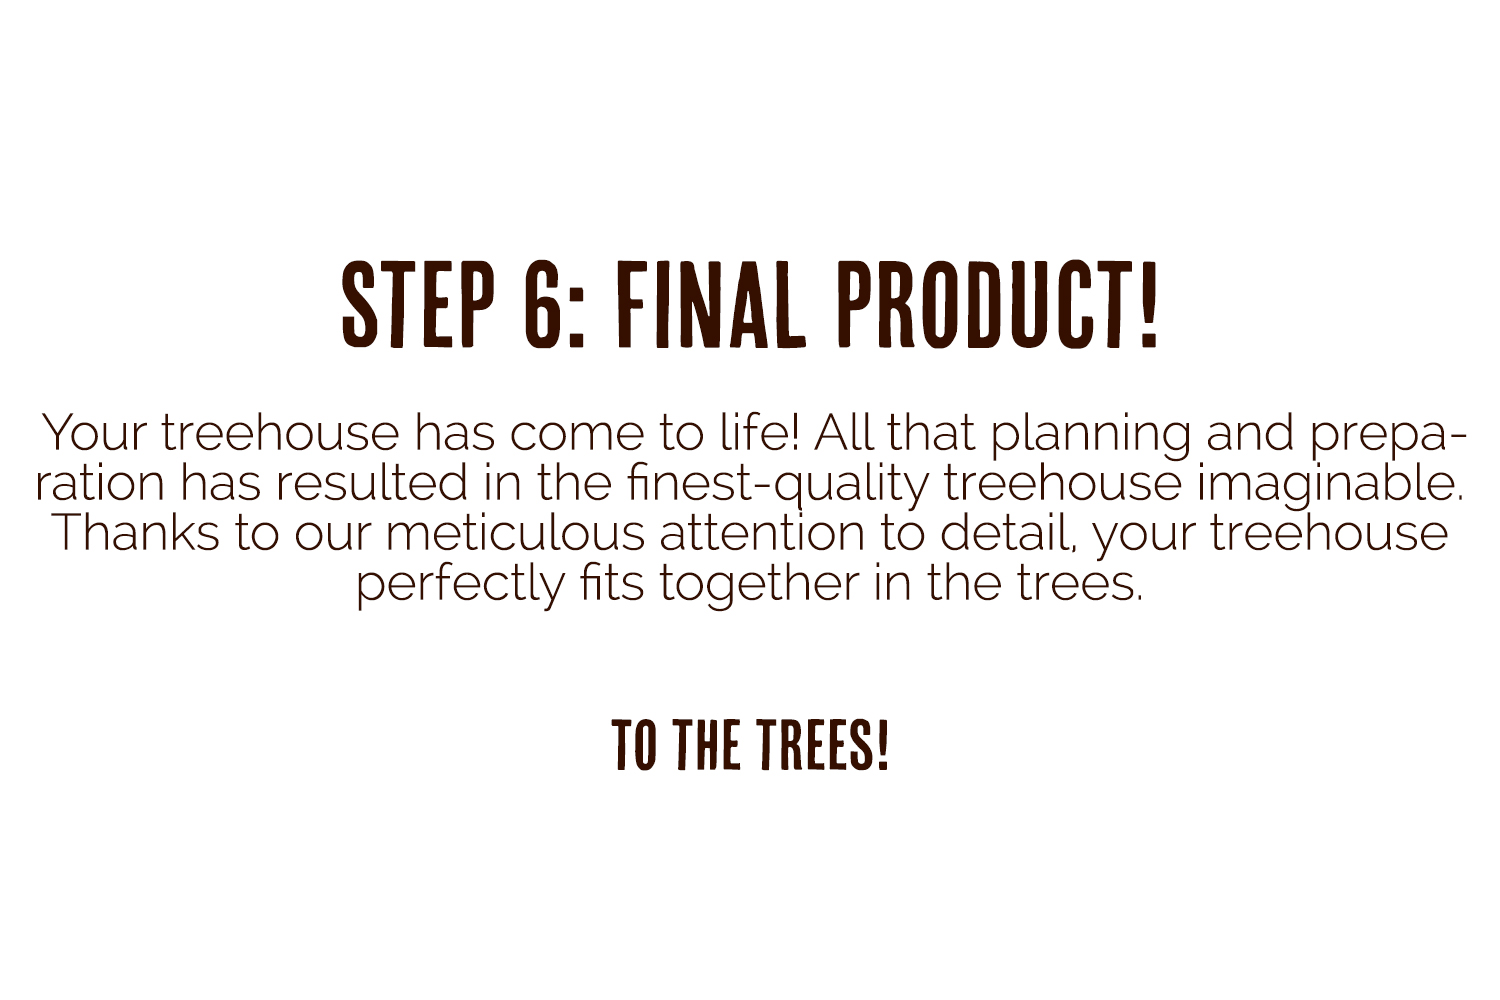 Step 6 of treehouse design